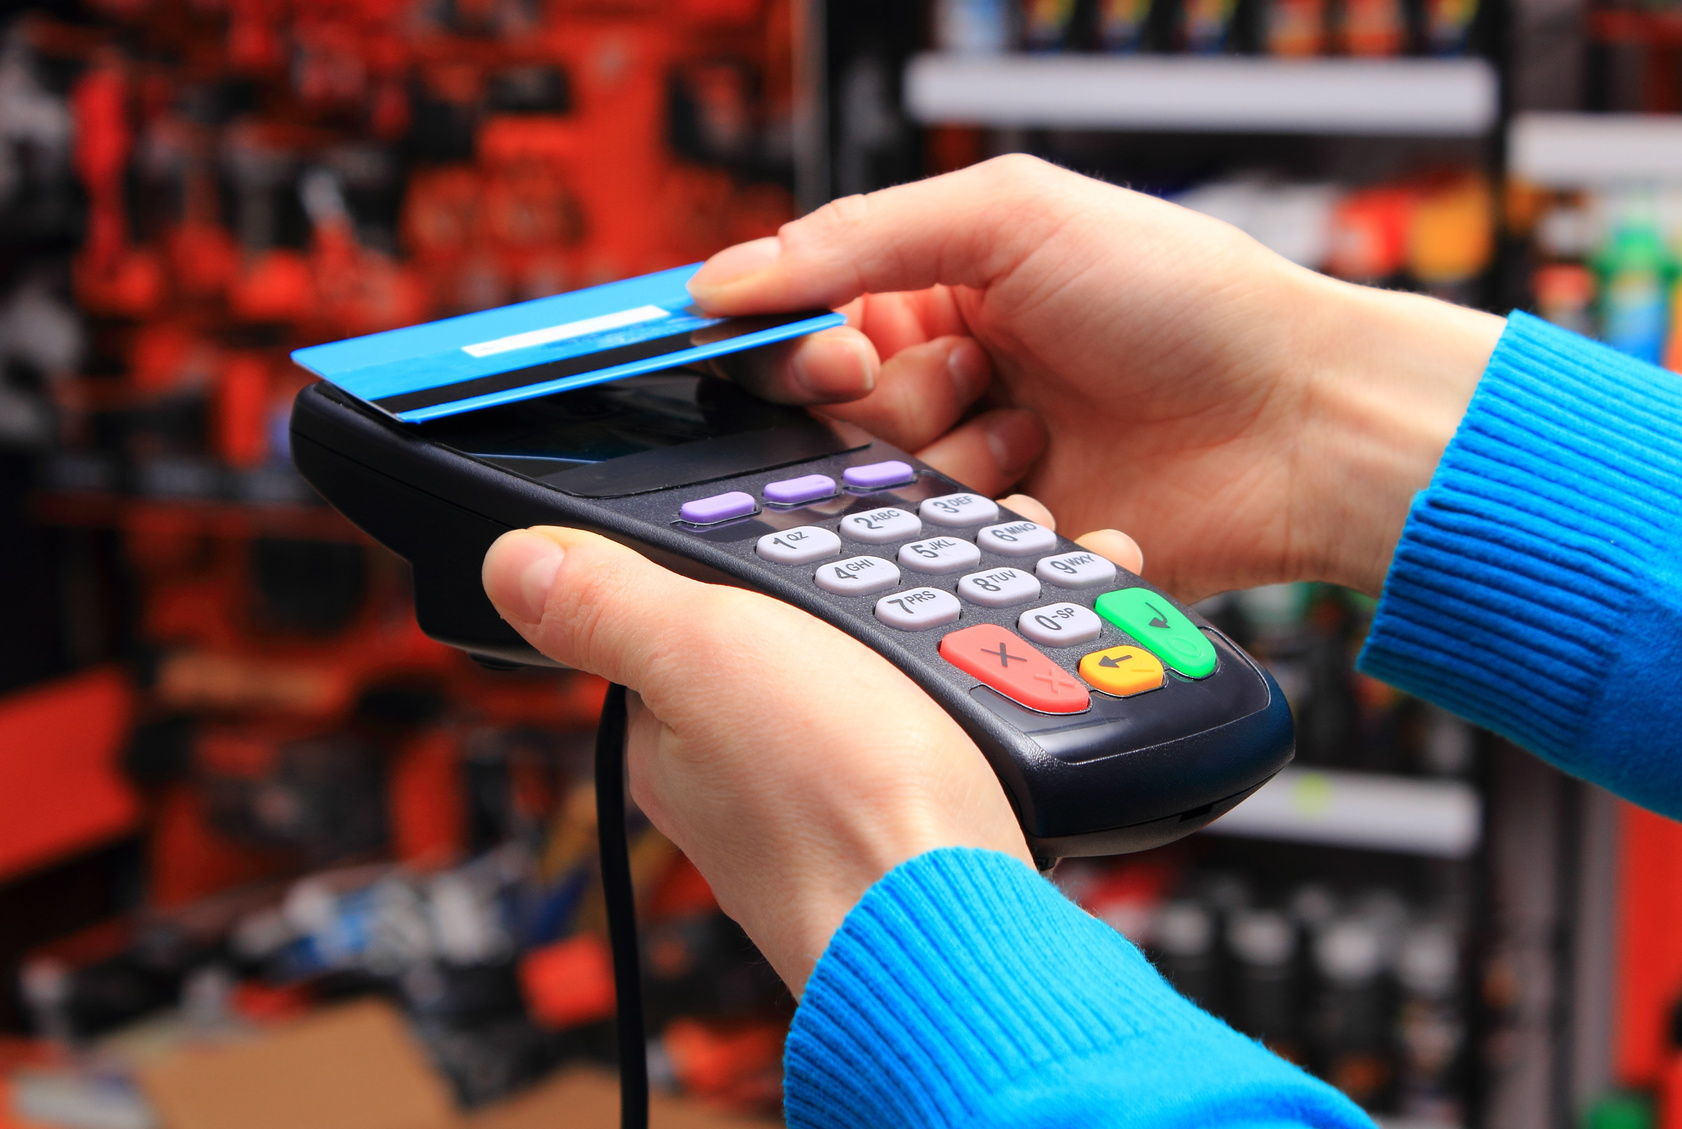 How Did the EMV Liability Shift Lay the Groundwork for Contactless Cards?